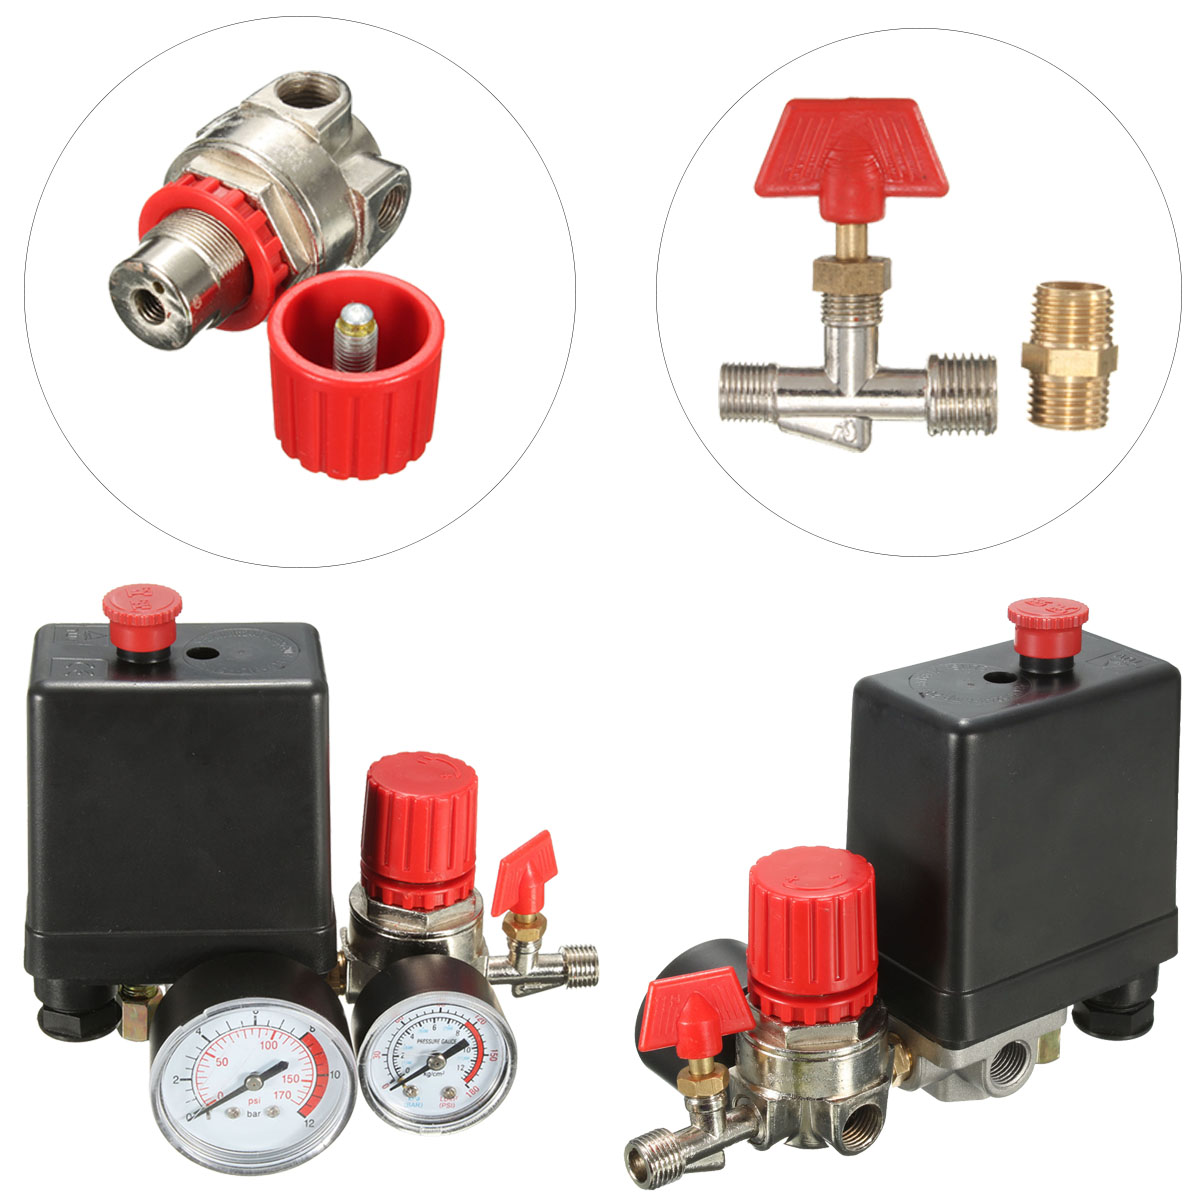 Cosay Air Compressor Pressures Switch Control Adjustable Air Regulator Valves Compressor Four